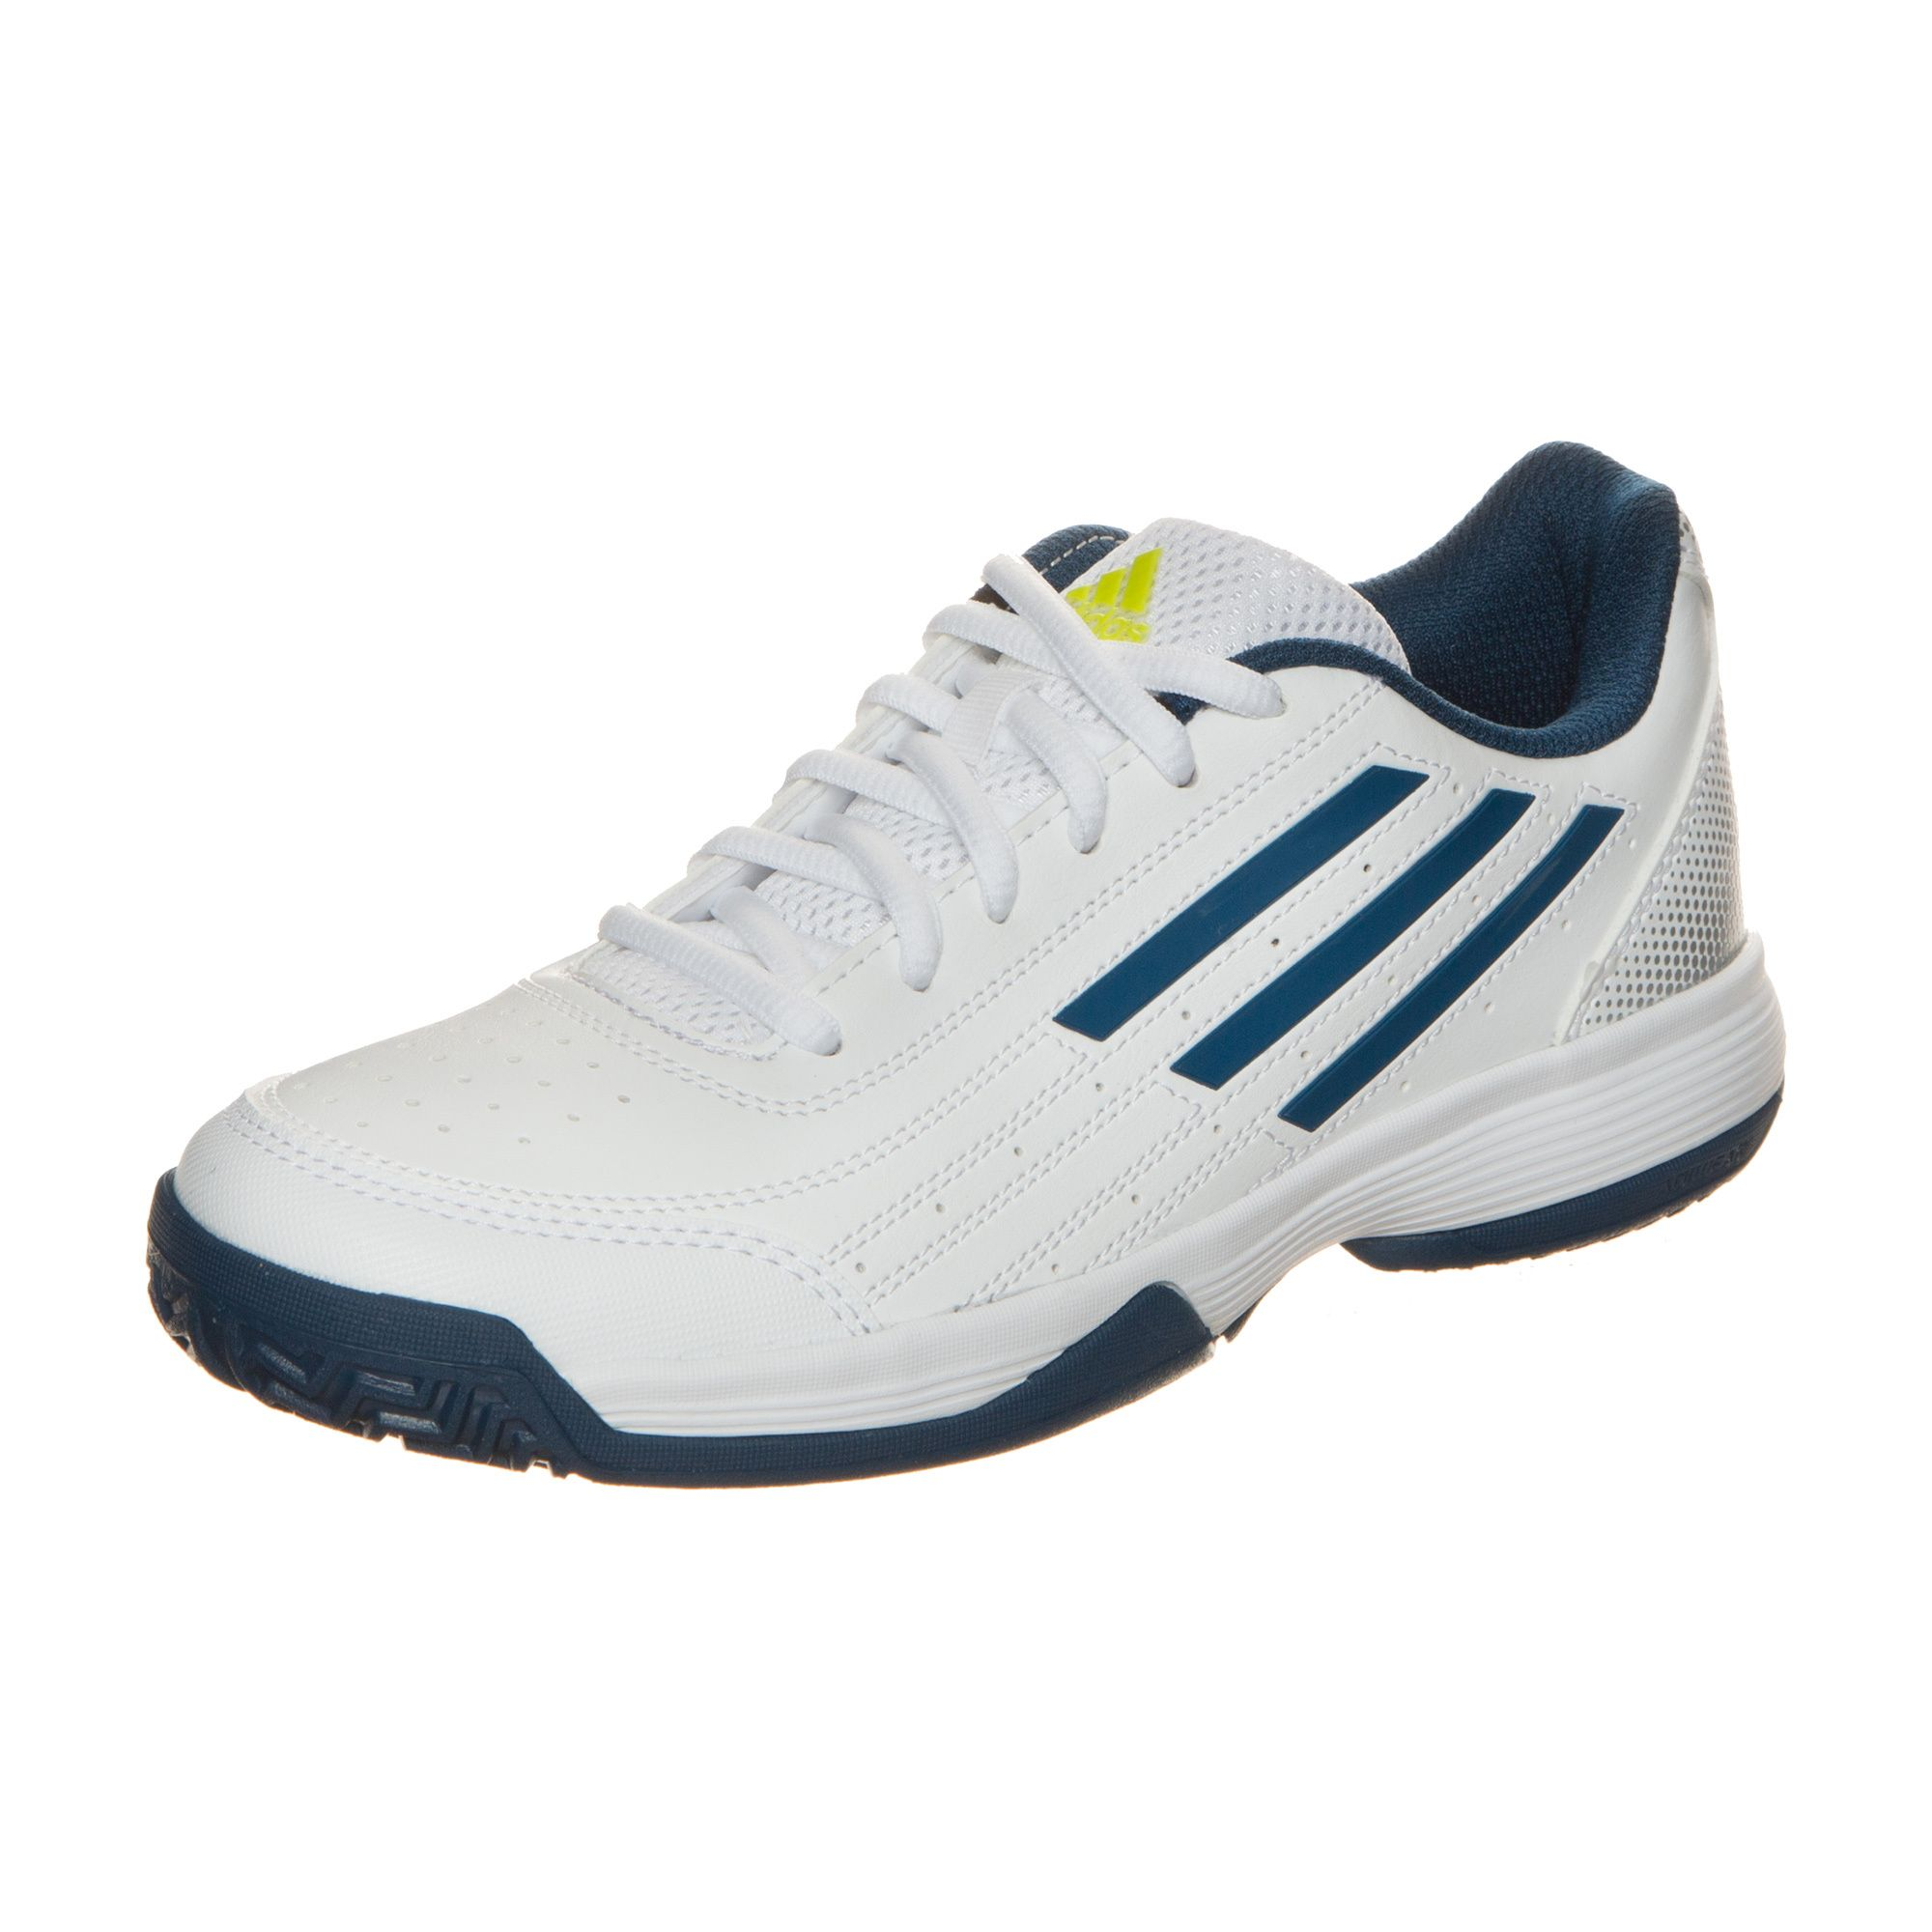 ADIDAS PERFORMANCE adidas Performance Sonic Attack Tennisschuh Kinder